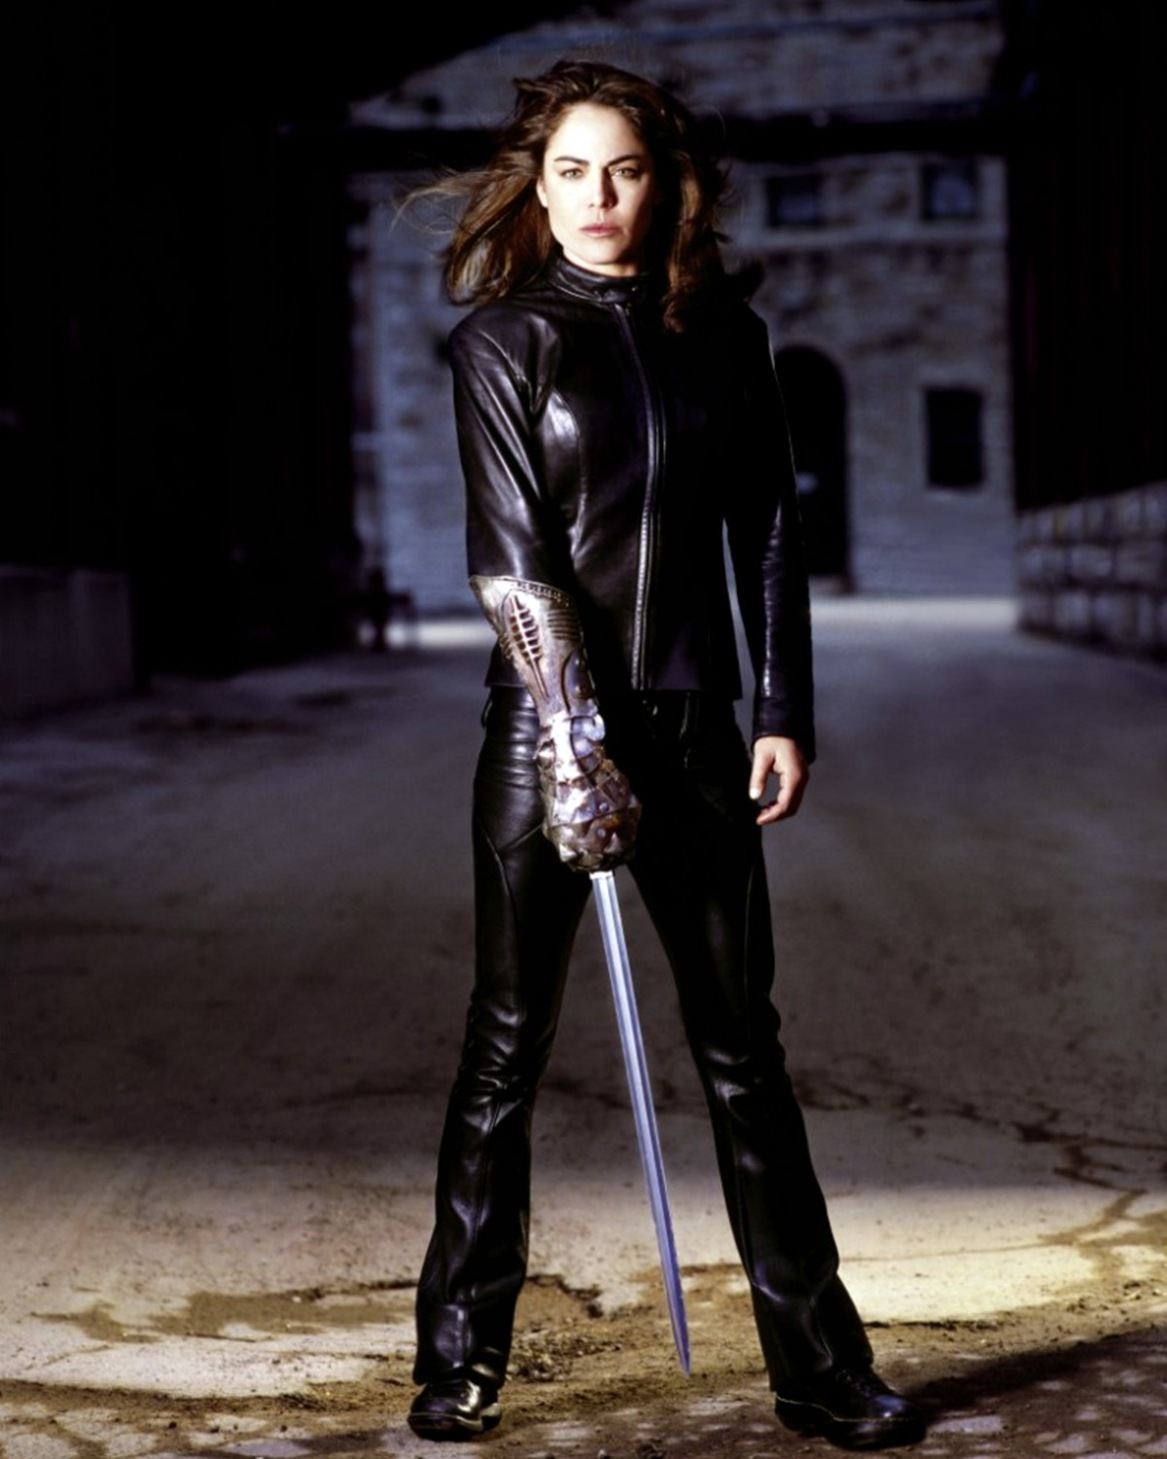 Pictures & Photos from Witchblade (TV Series 2001-2002